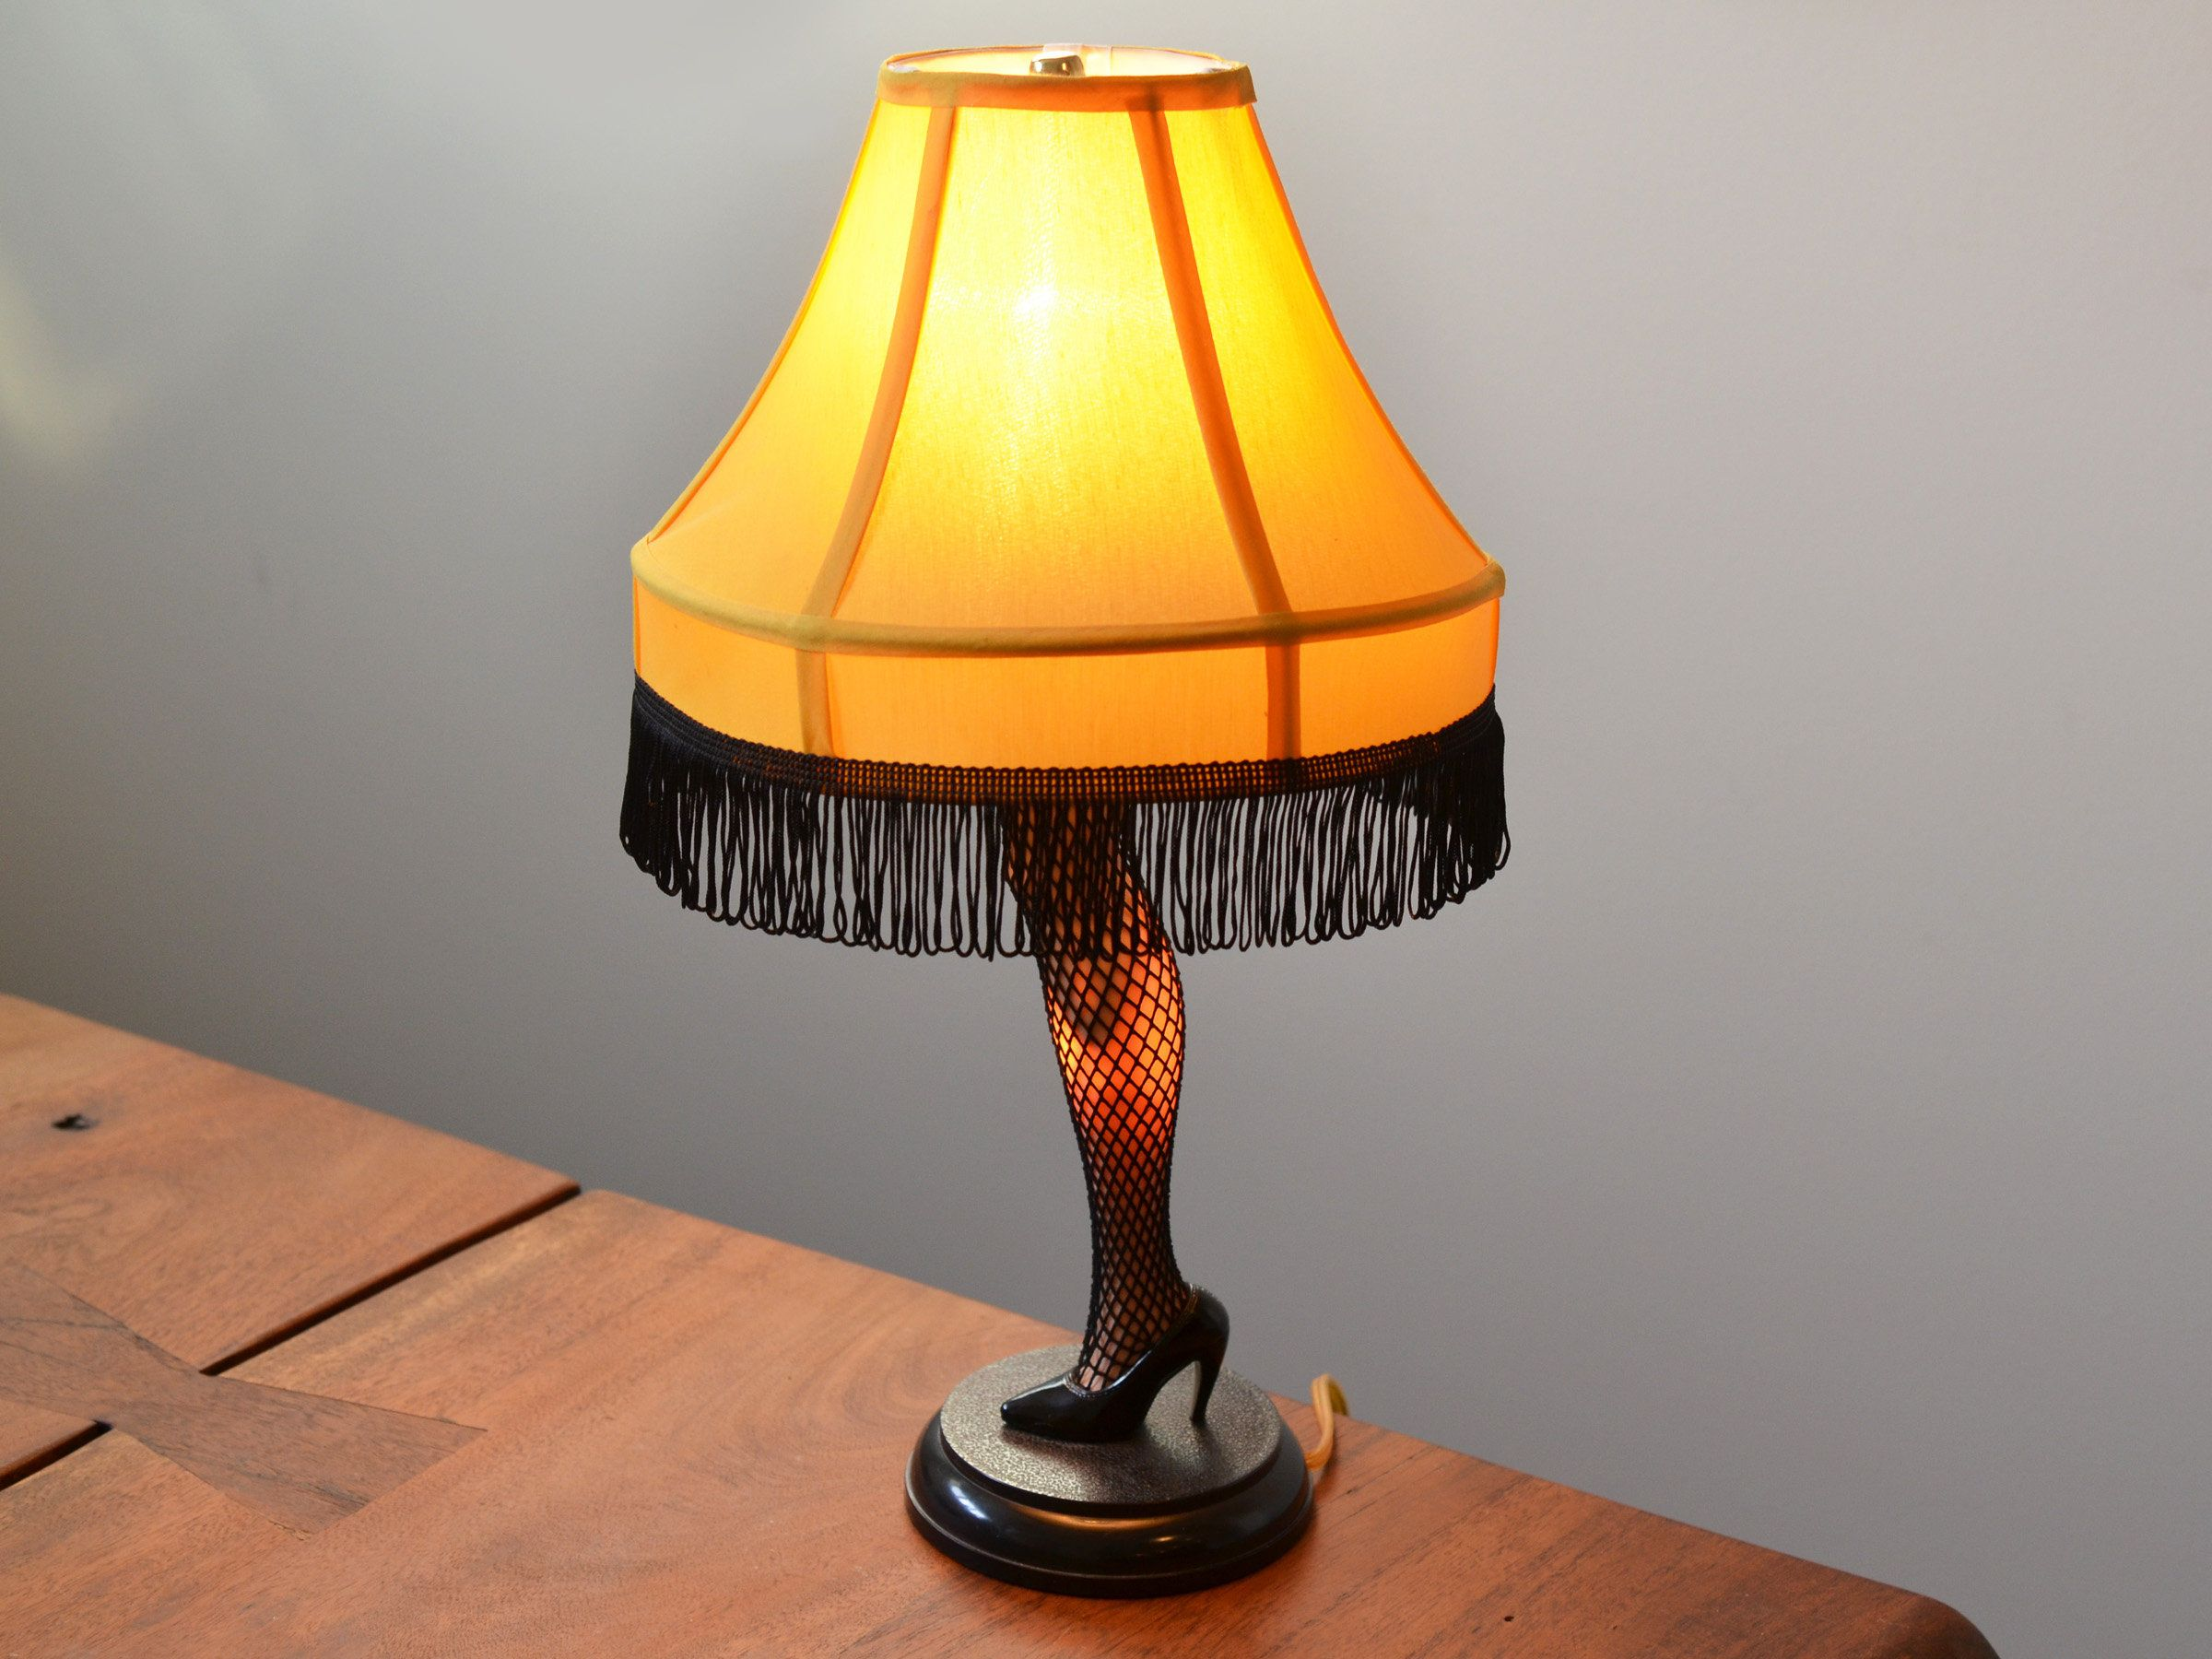 Vintage Leg Lamp 19 A Christmas Story Reproduction With Black Tasseled Yellow Lamp Shade Mid Century Kitsch By Trashtiques On Leg Lamp Lamp Floor Lamp Grey